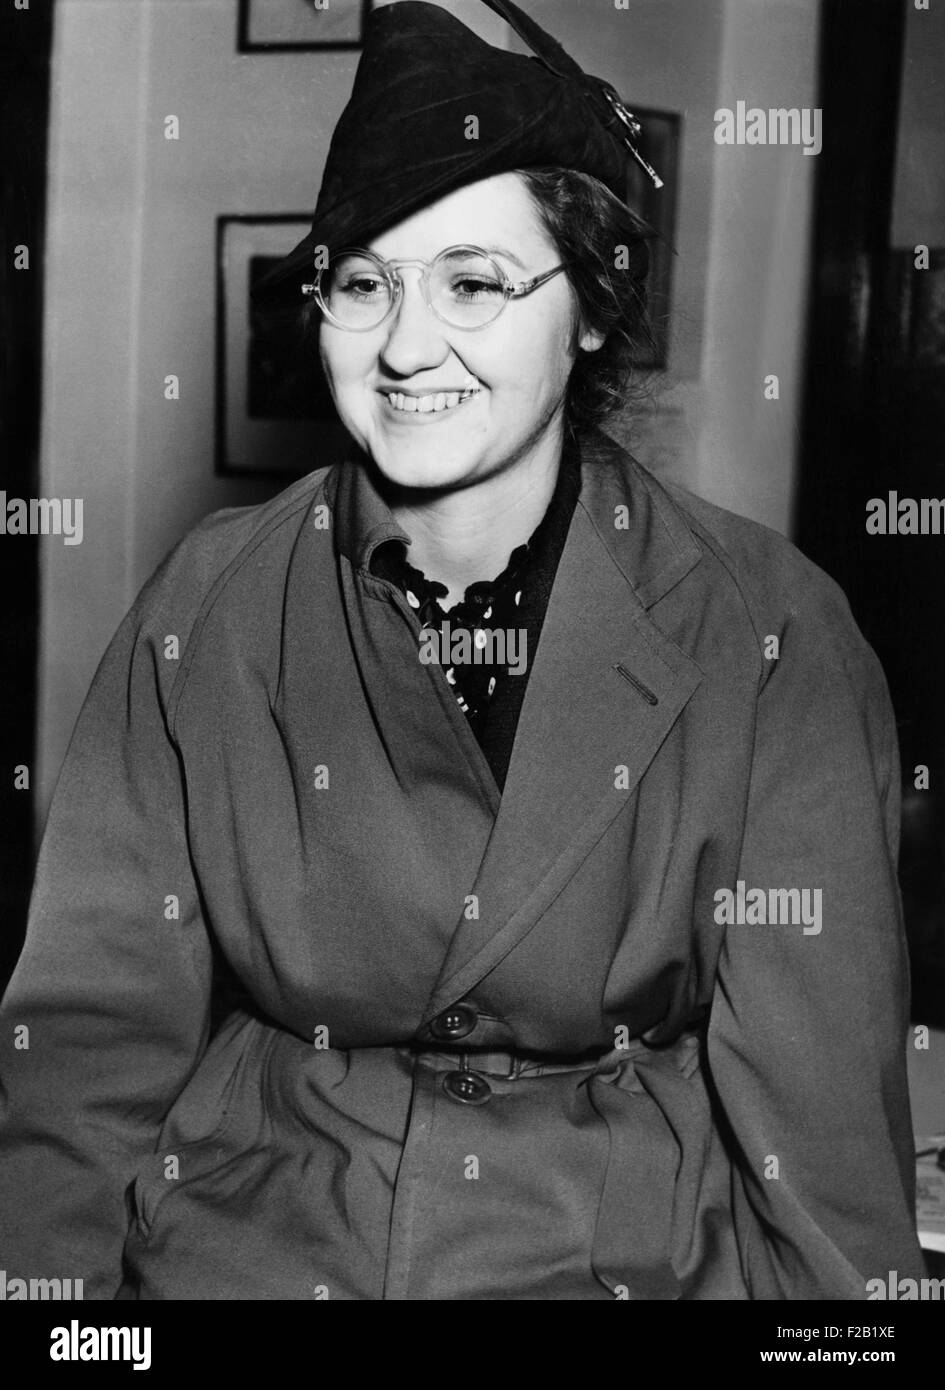 Mrs. Francis Flegenheimer, widow of the slain gangster Dutch Schultz, Feb. 3, 1938. Her lawyers were preparing to - Stock Image